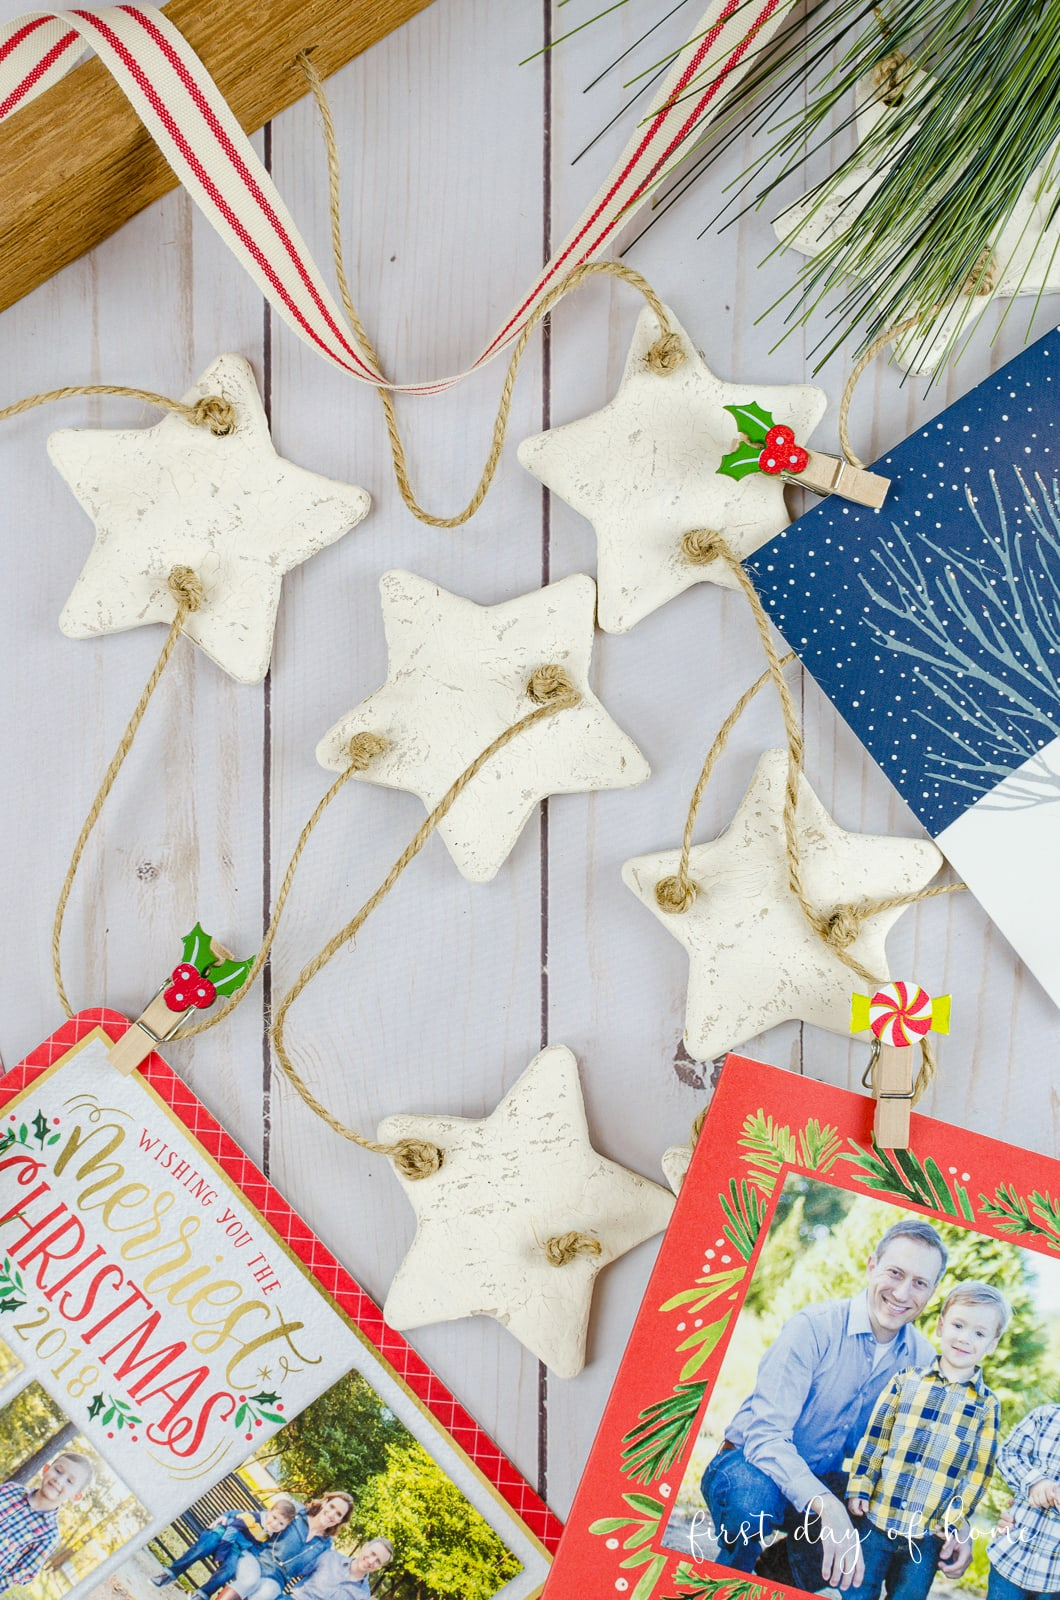 DIY Christmas card holder with jute string, farmhouse ribbon and wood board for hanging